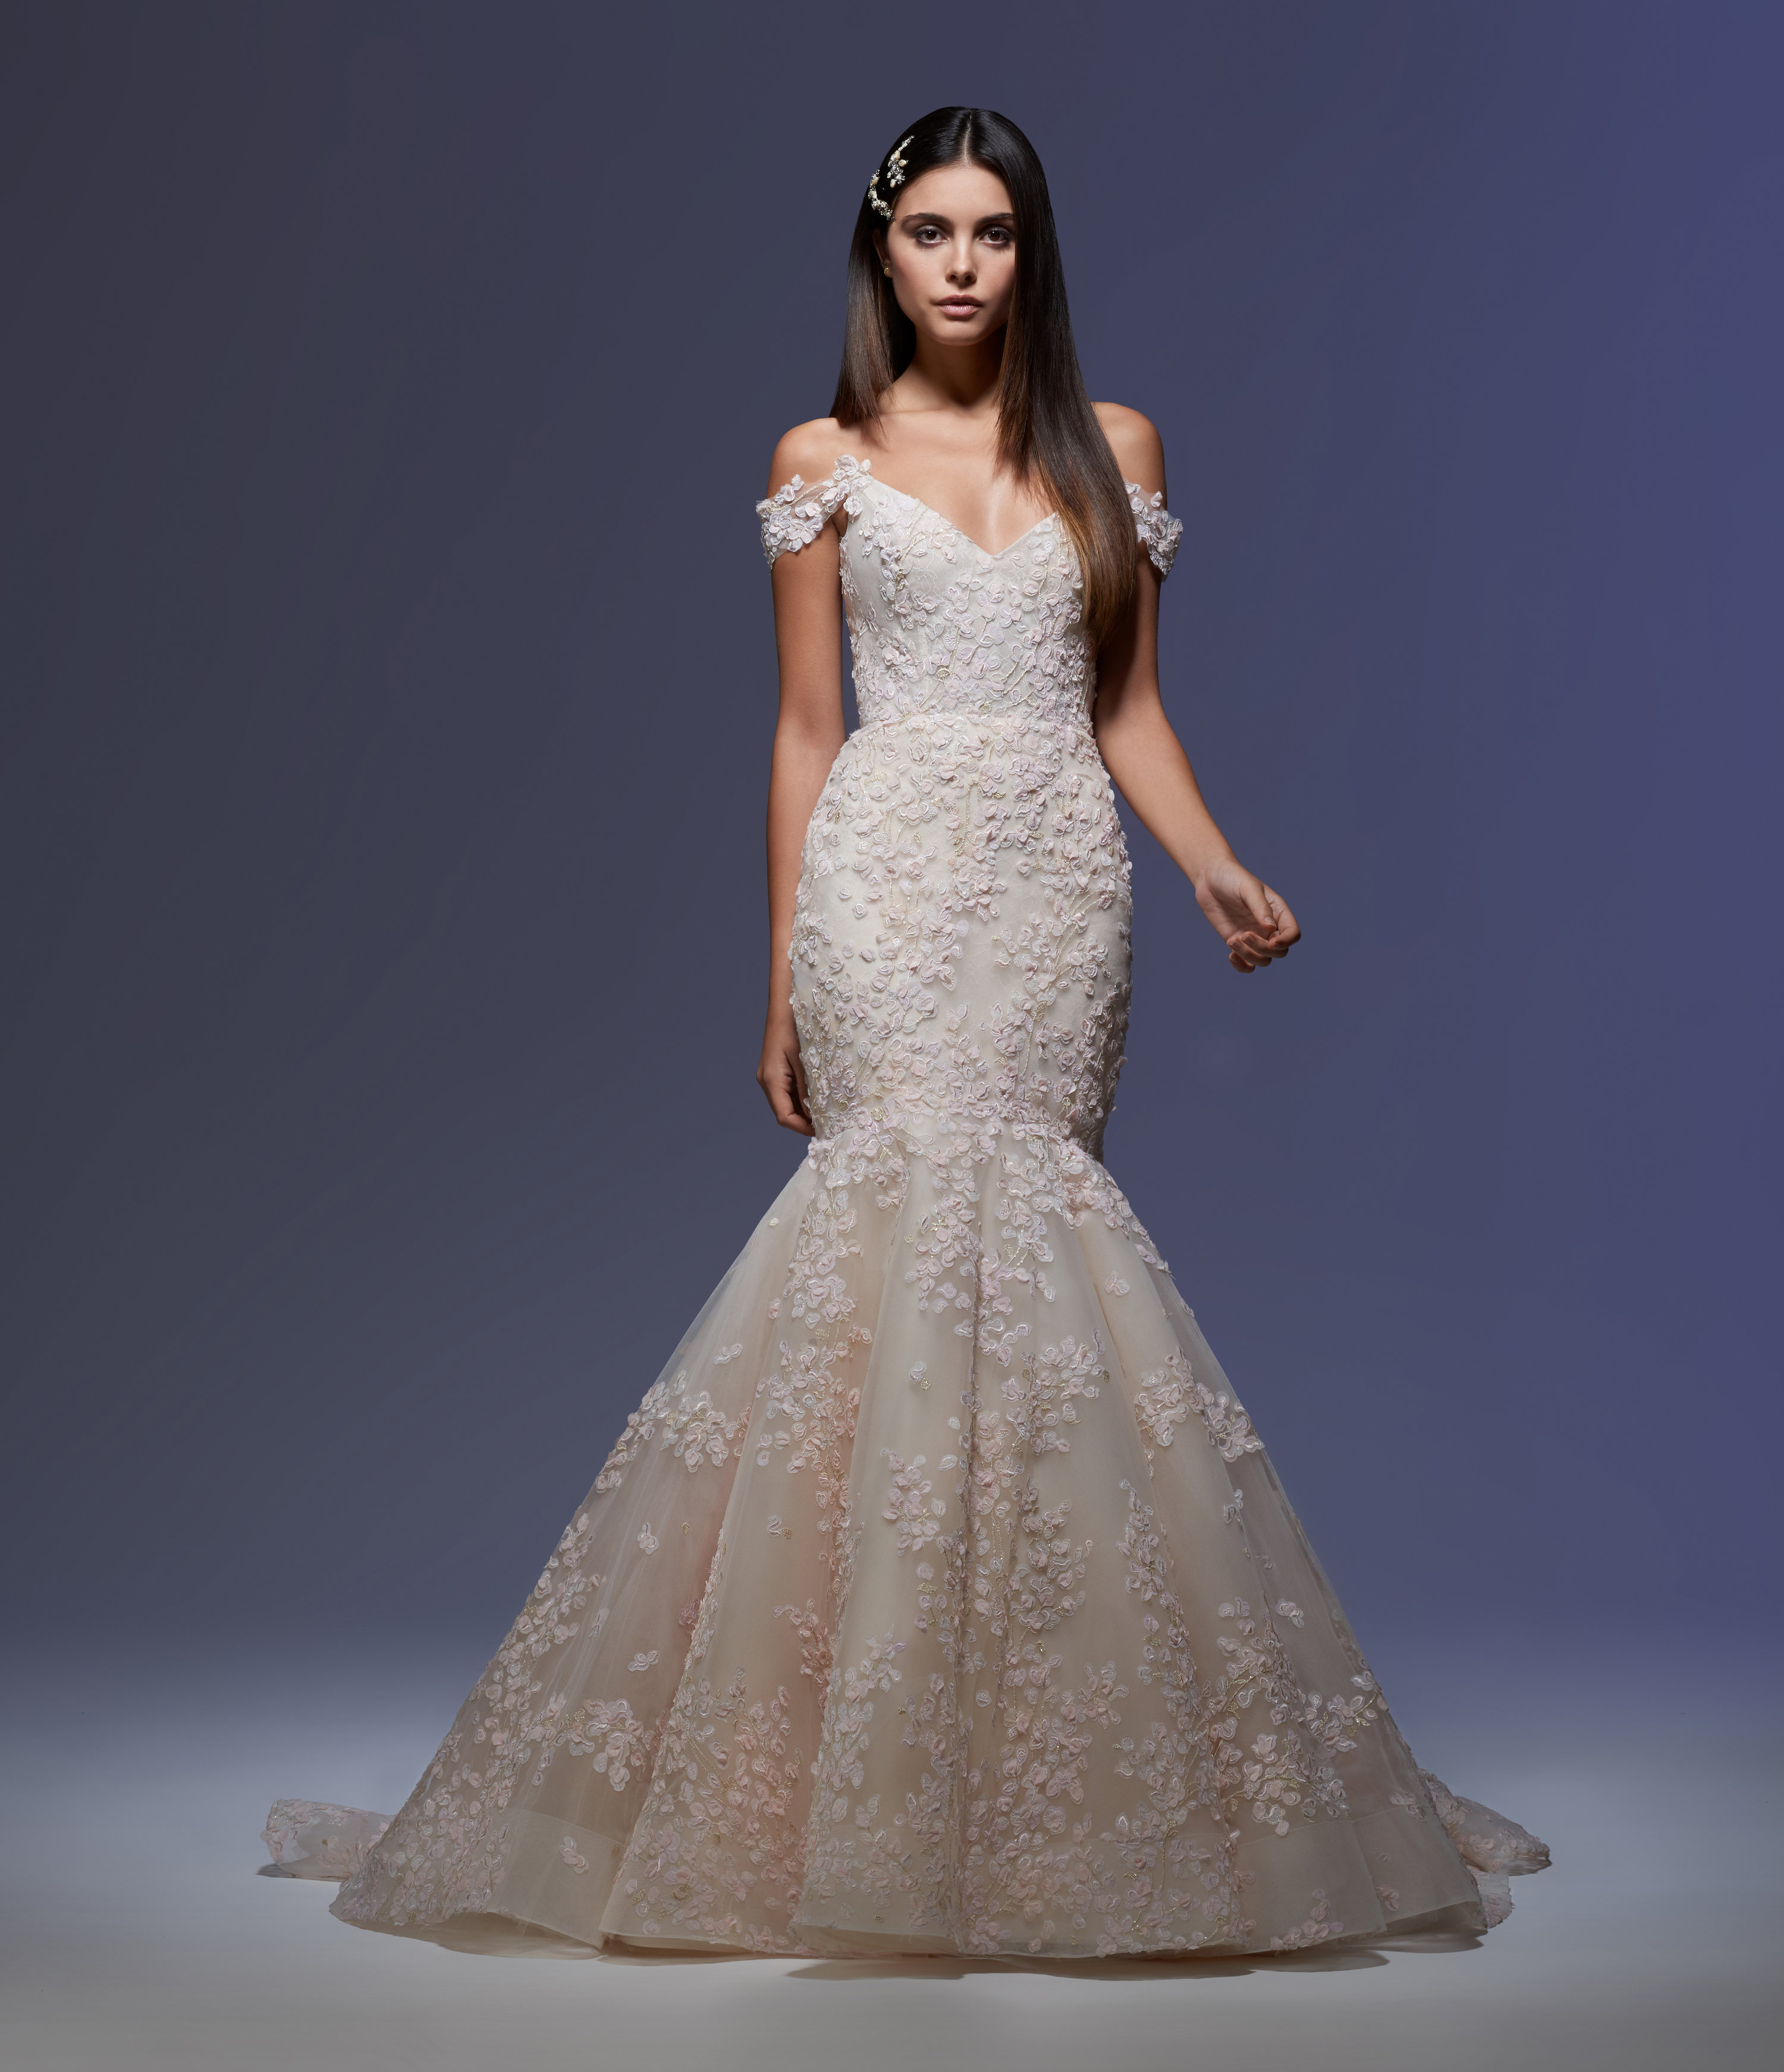 Bridal Gowns And Wedding Dresses By Jlm Couture Style 32000 Ines